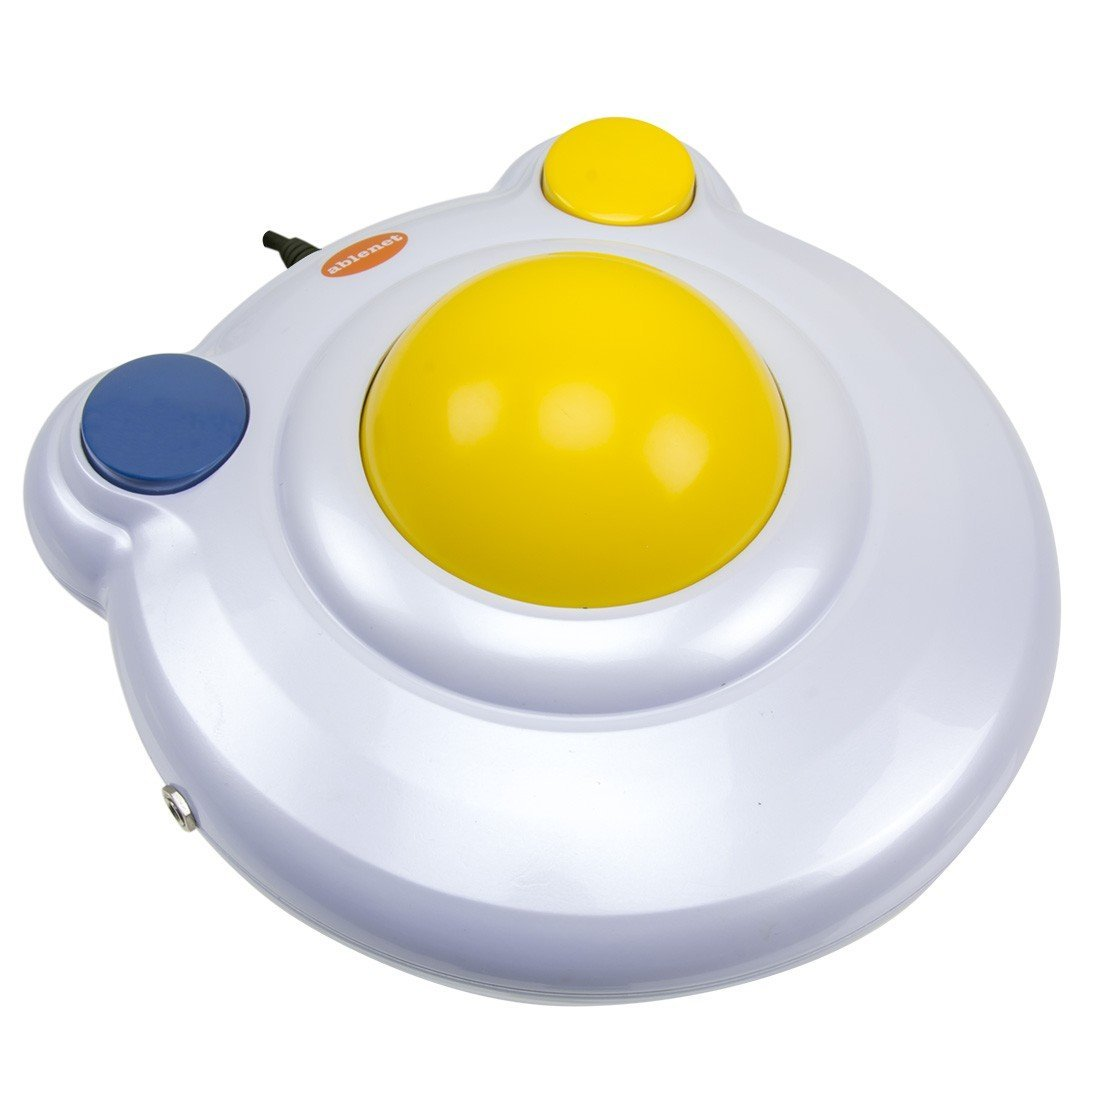 """BIGtrack 2.0 Trackball - for Users who Lack Fine Motor Skills to Use a Mouse. A Big 3"""" Trackball With 2 Blue (Left and Right Mouse) Buttons -#12000006 (Certified Refurbished)"""